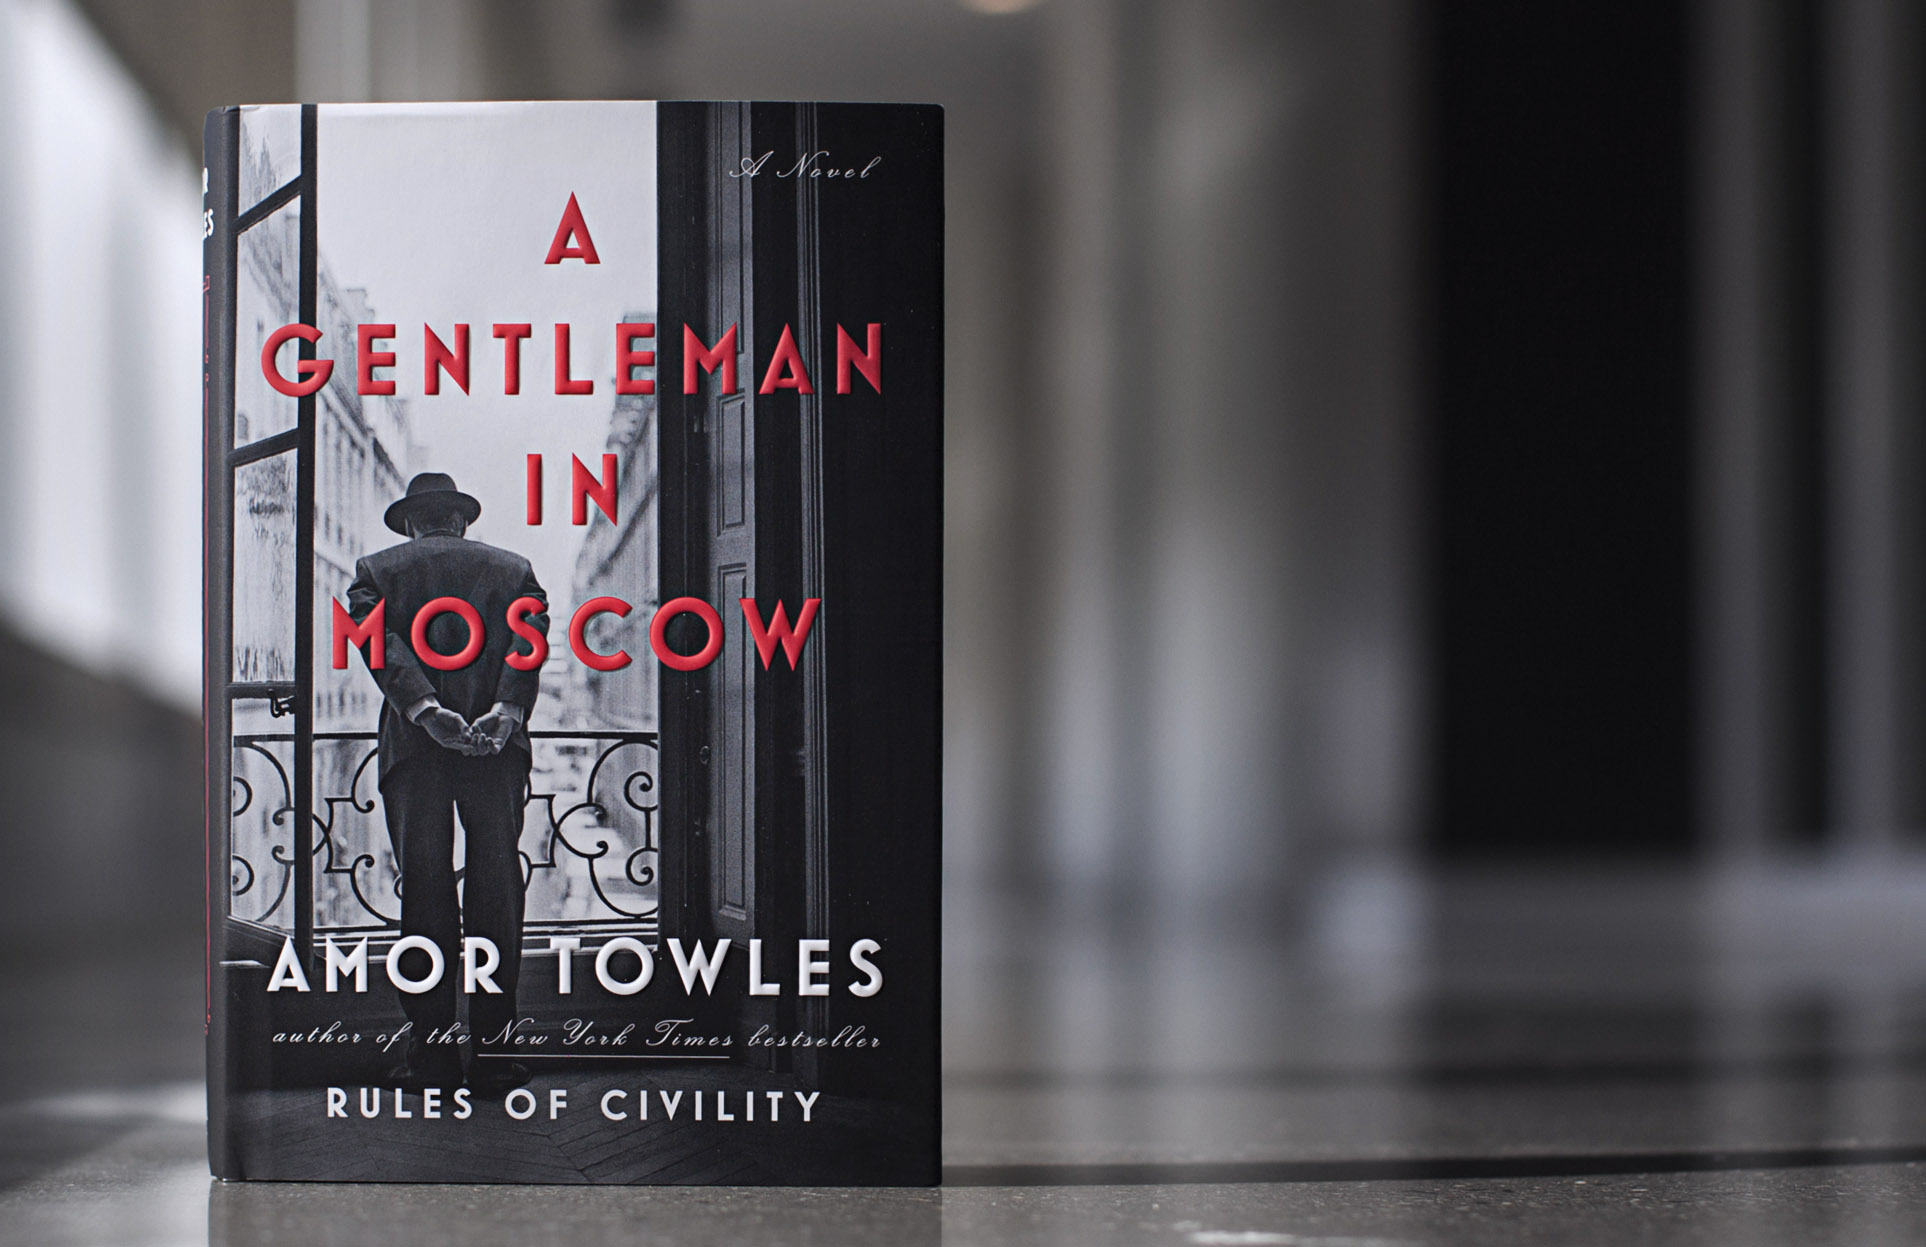 Book cover, a gentleman in Moscow